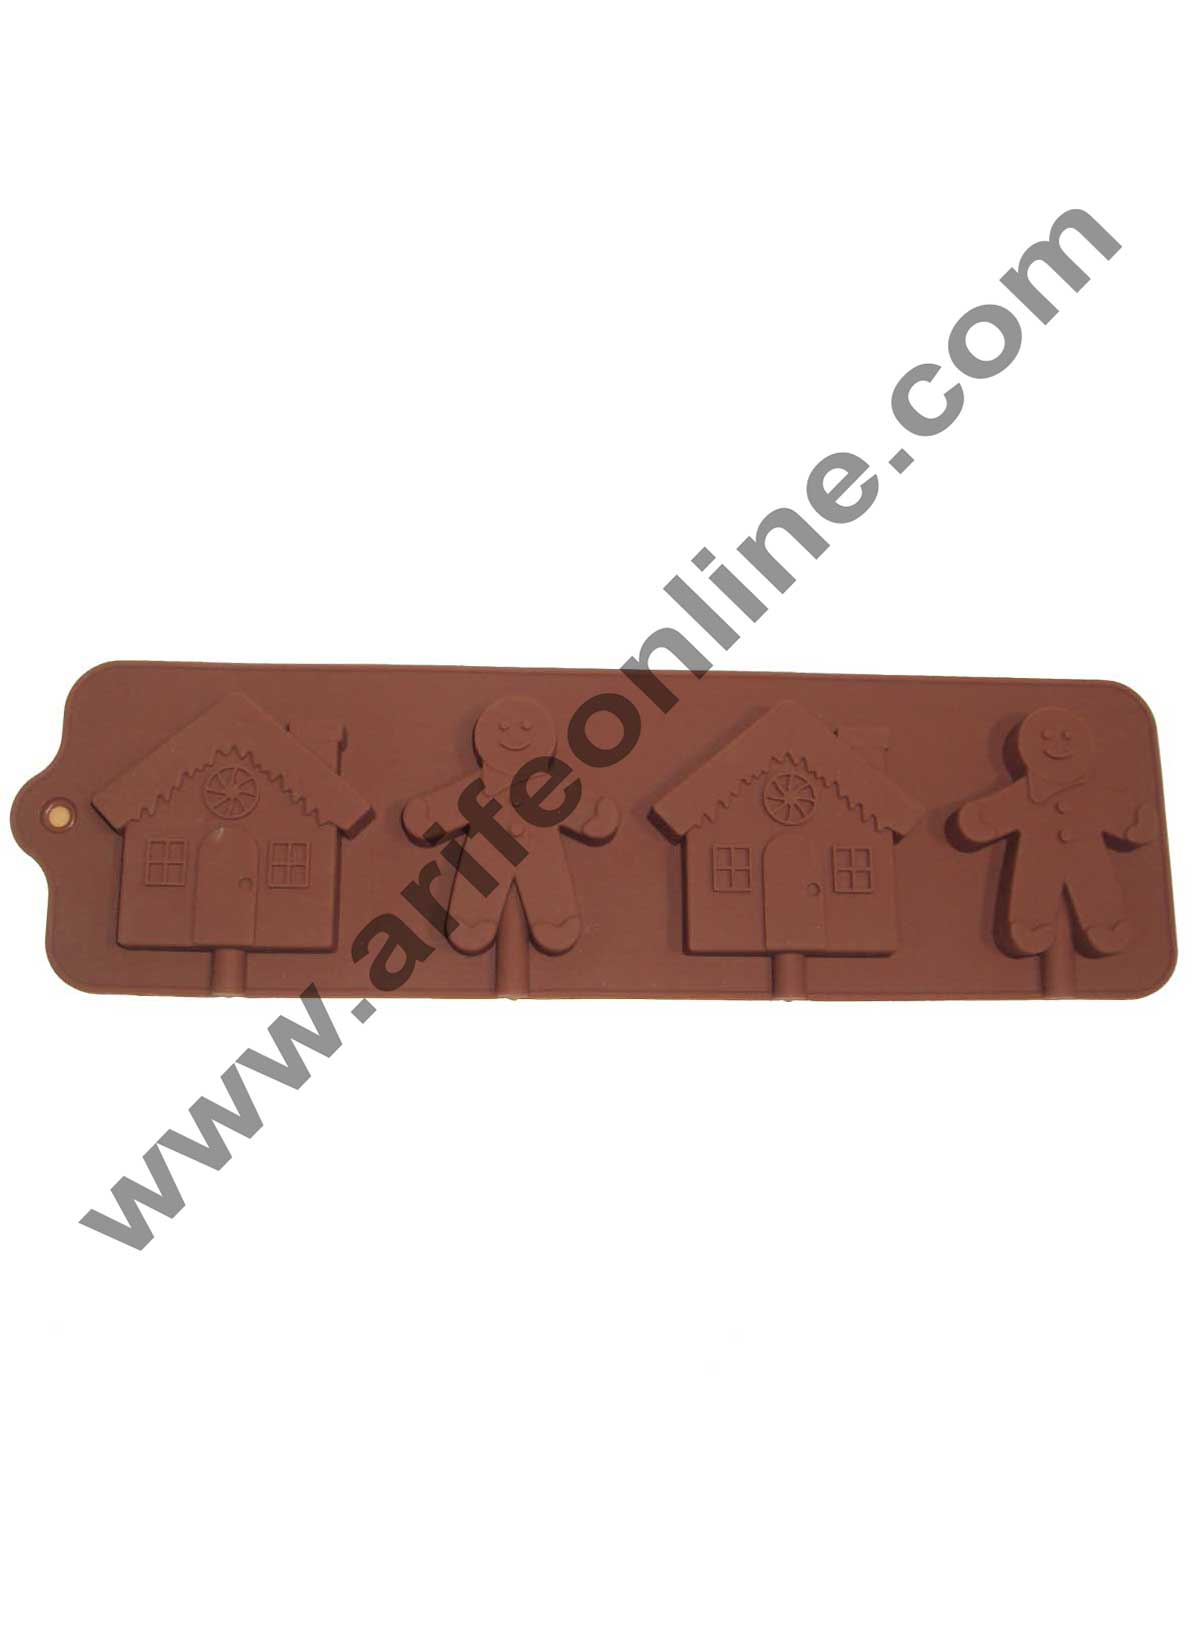 Cake Decor Silicon 4 Cavity Ginger and Home Brown Chocolate Mould, Ice Mould, Chocolate Decorating Mould